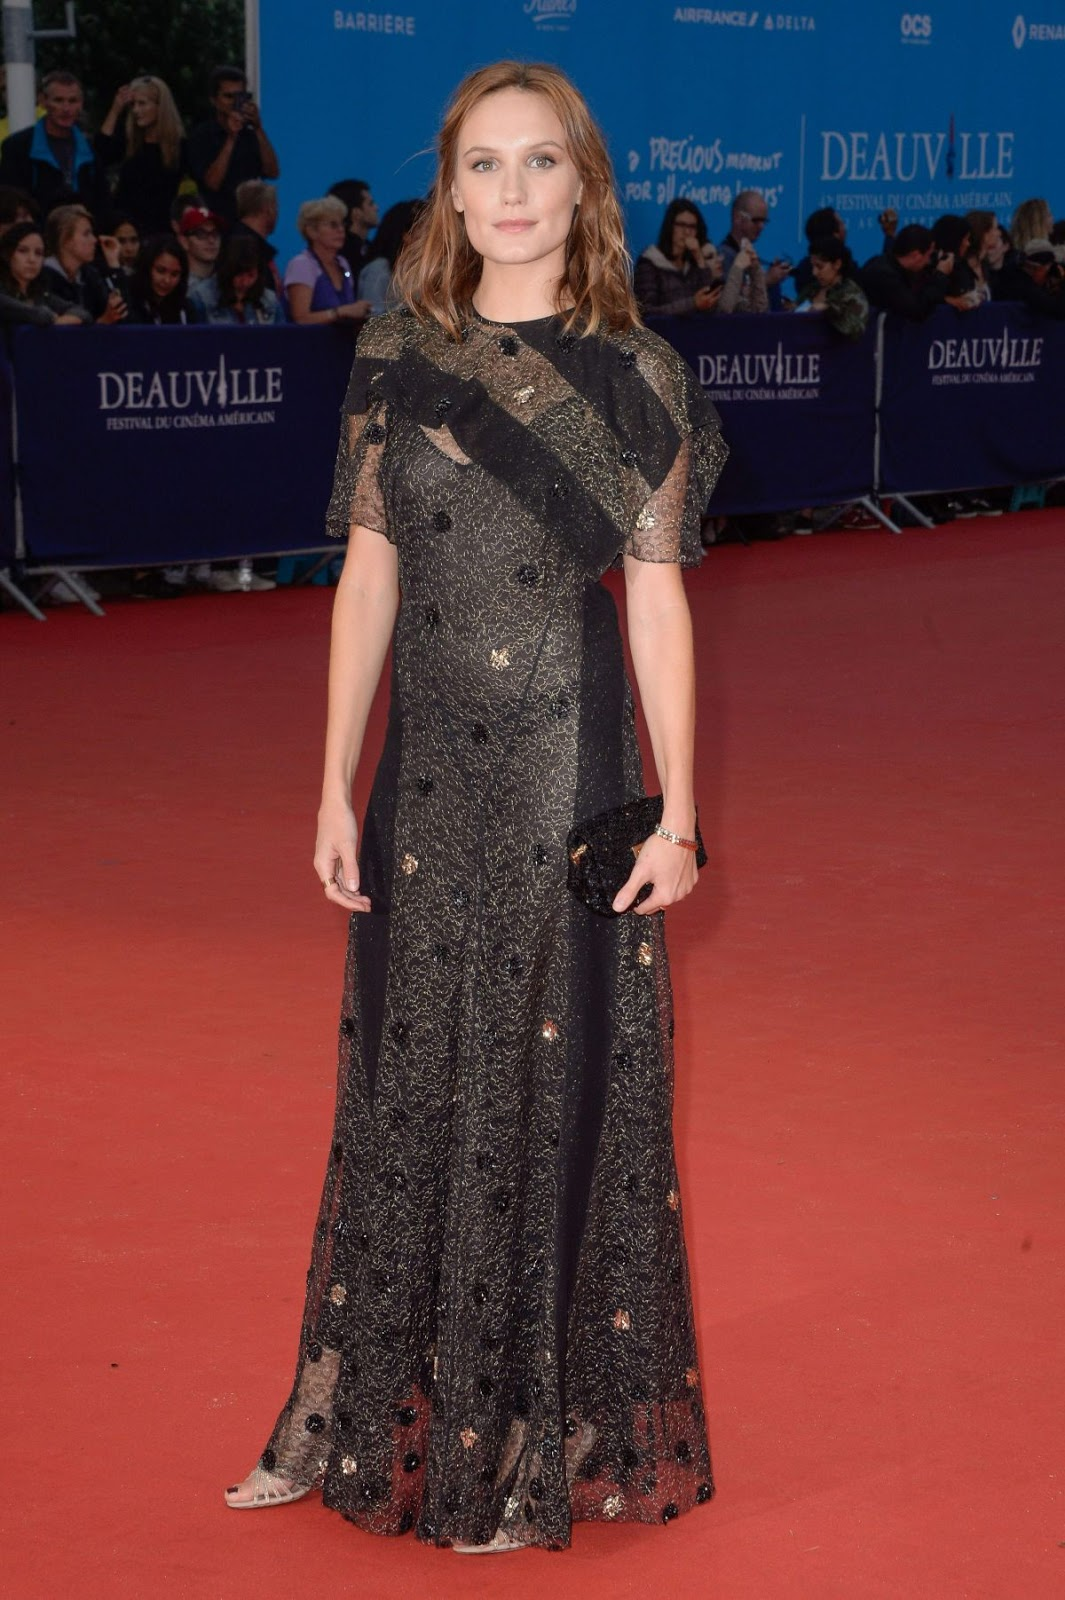 HQ Wallpapers of Ana Girardot at In Dubious Battle Premiere At 2016 Deauville American Film Festival